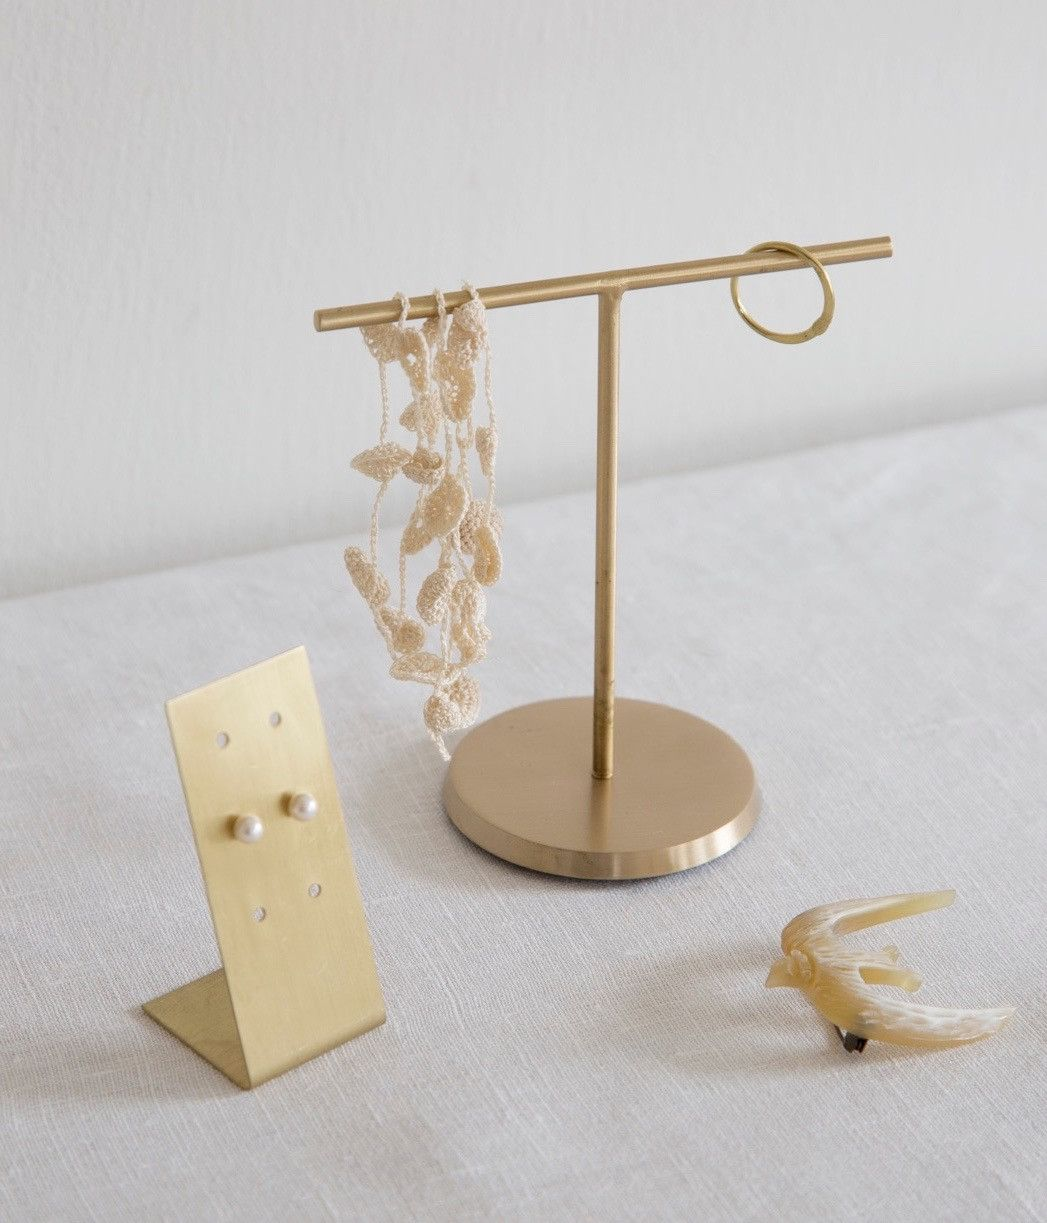 Brass Accessory Stand Small is part of Brass Home Accessories Beautiful - made in India wipe clean, polish if necessary IHC727S